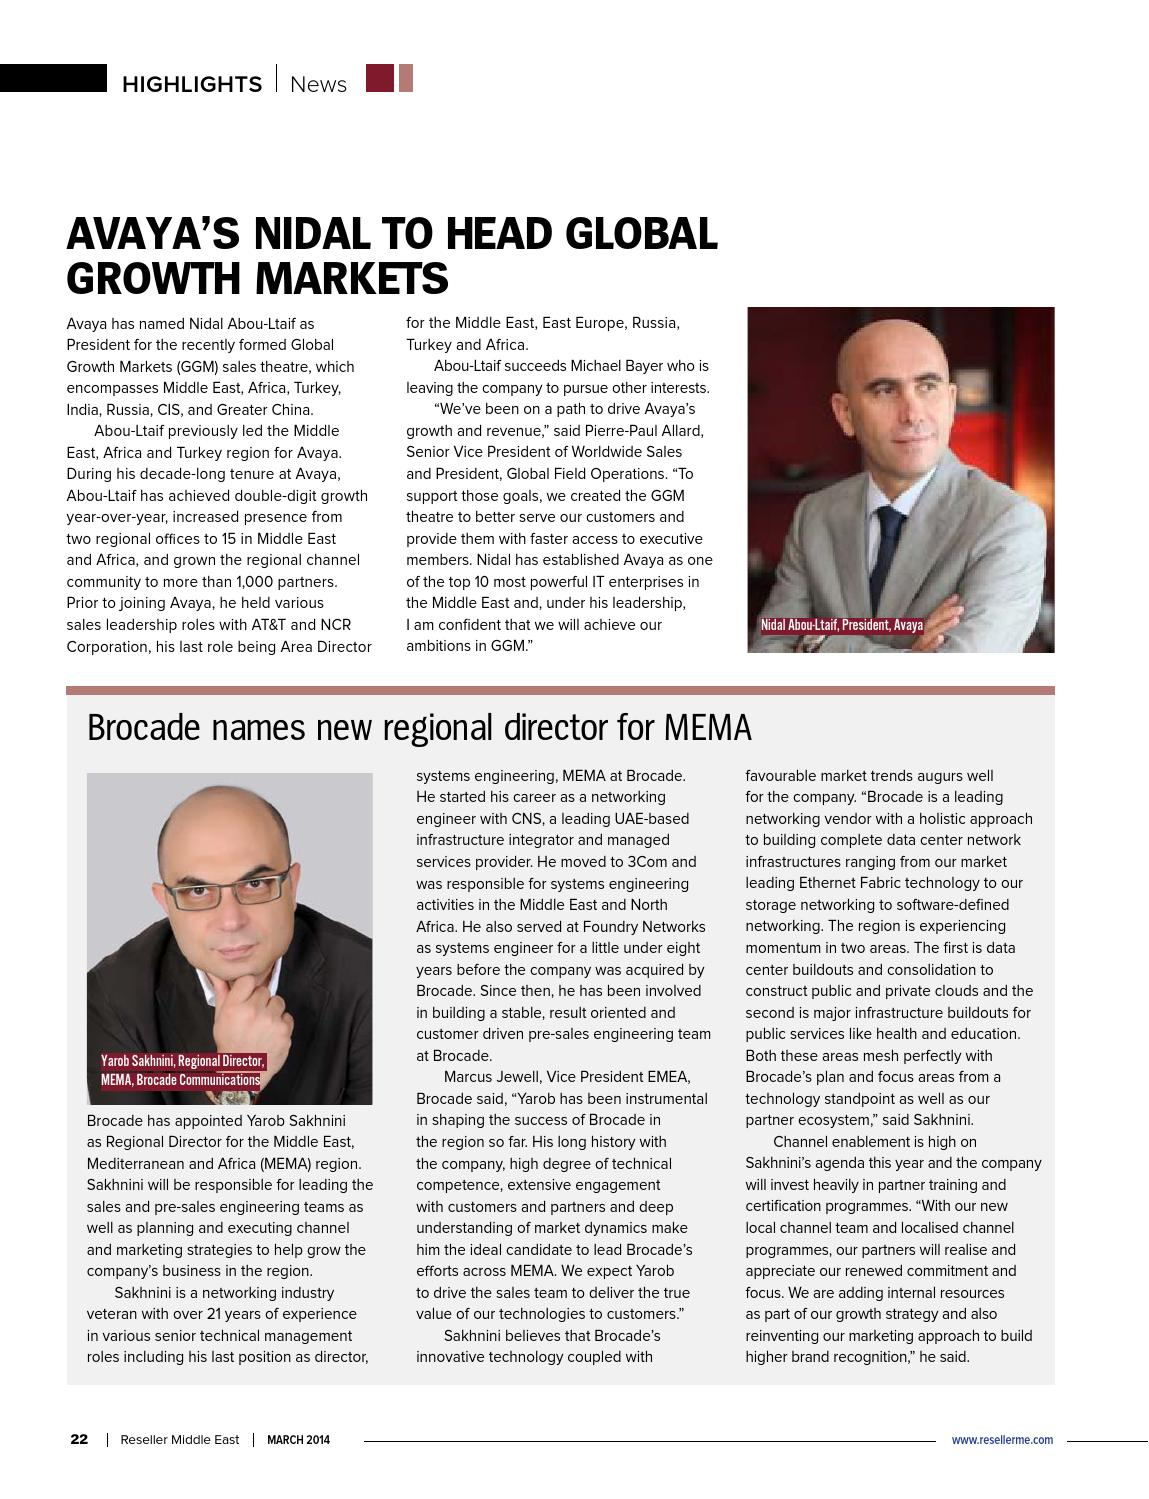 Reseller Middle East March 2014 by Reseller Middle East - issuu